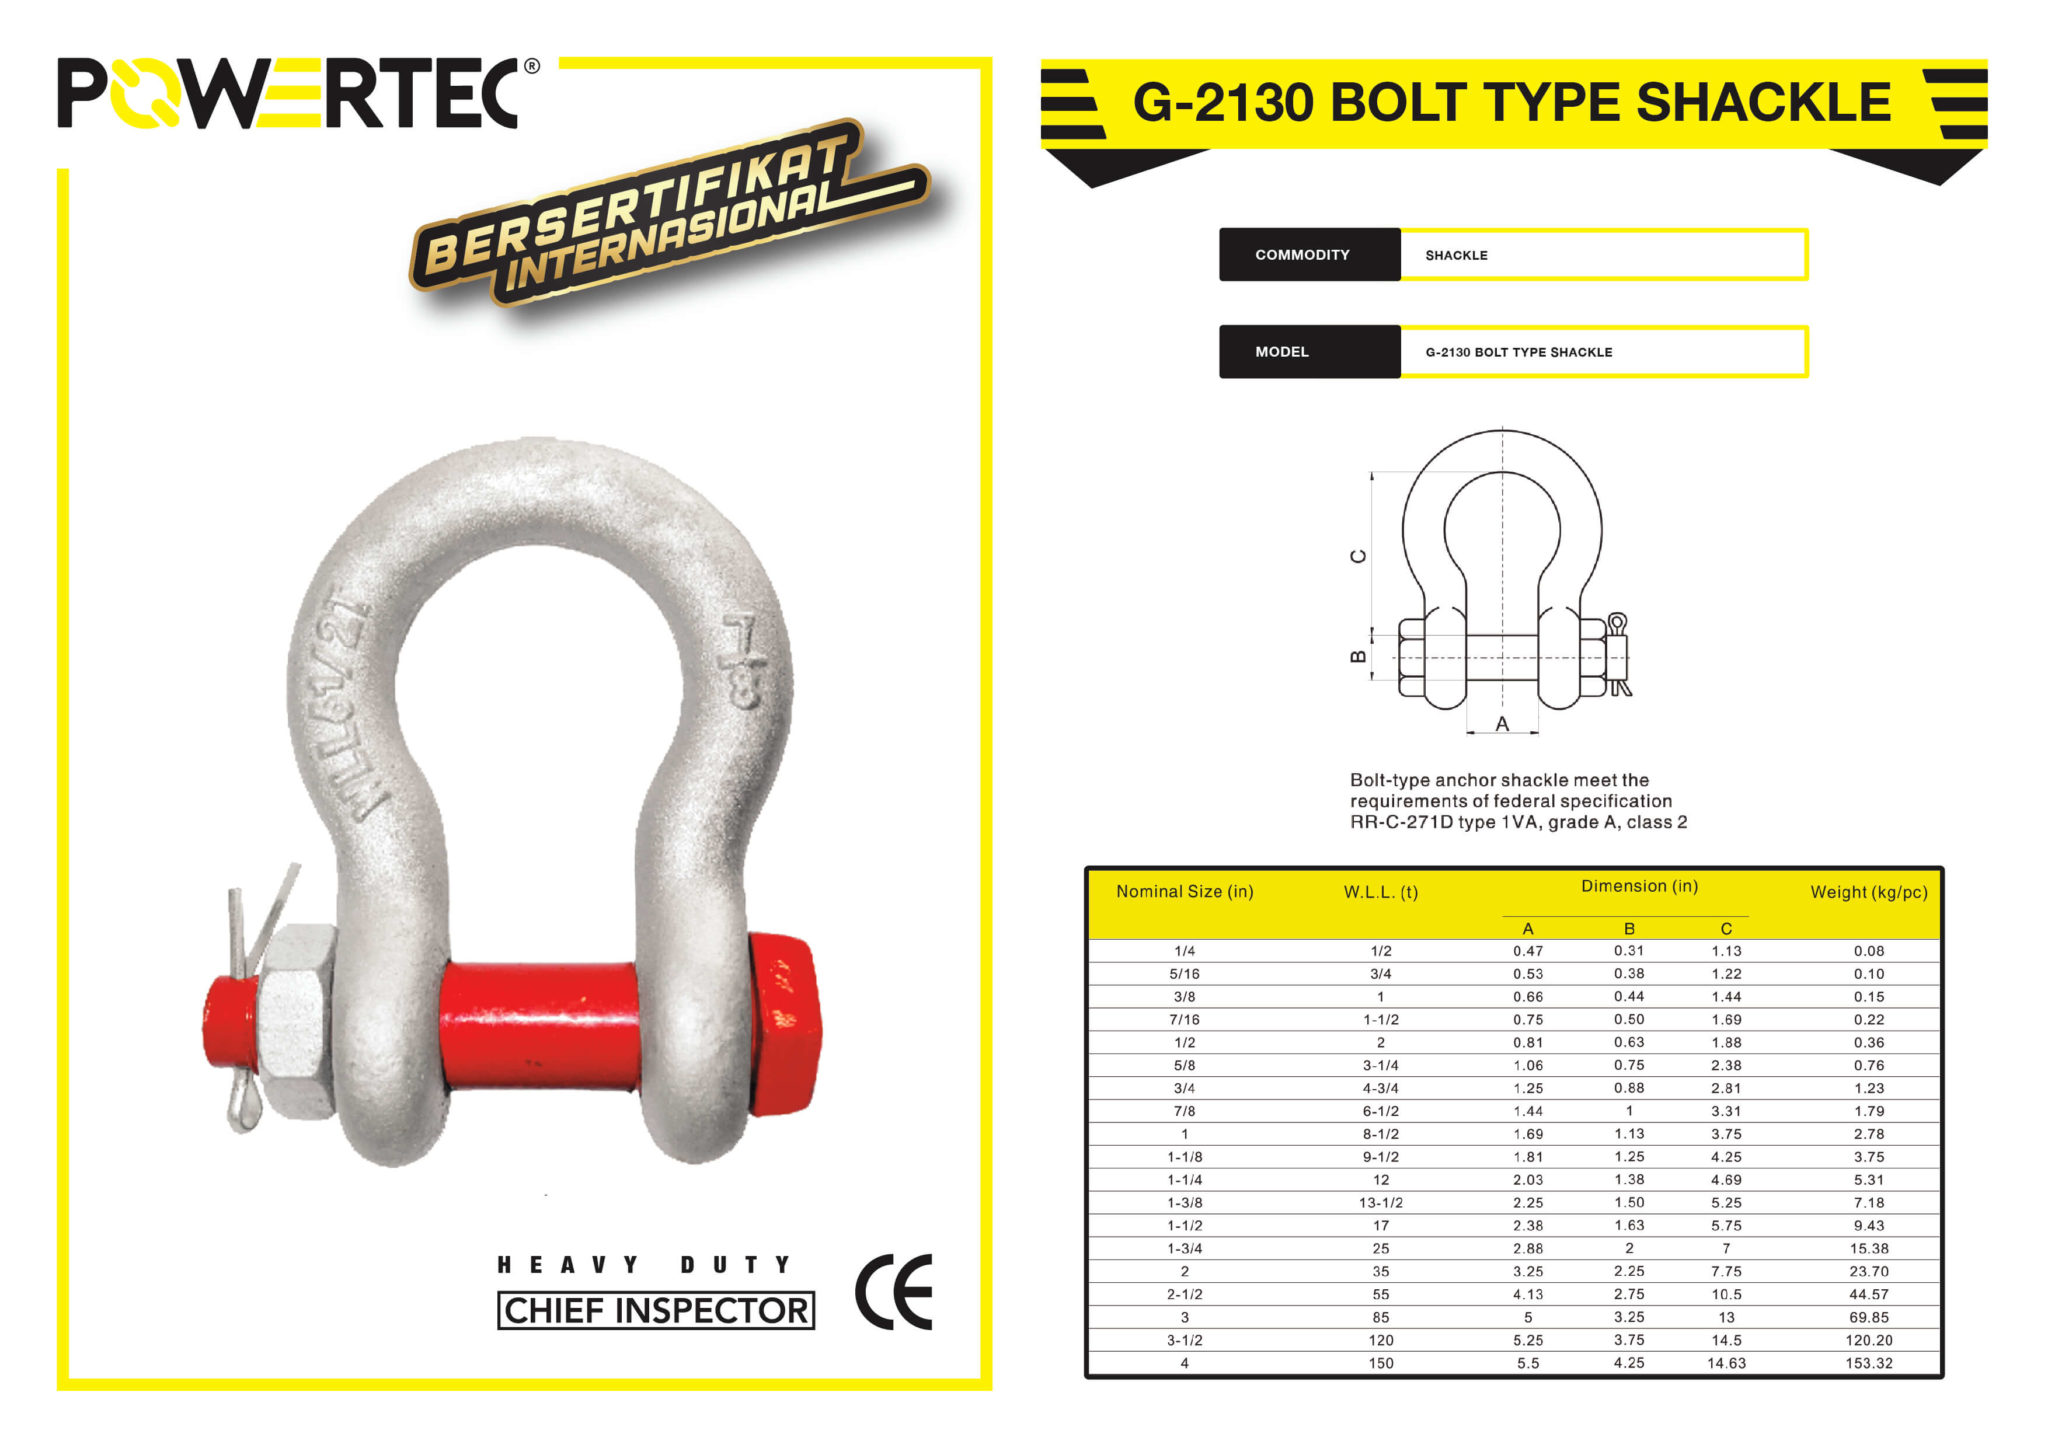 POWERTEC G-2130 BOLT TYPE SHACKLE BROCHURE